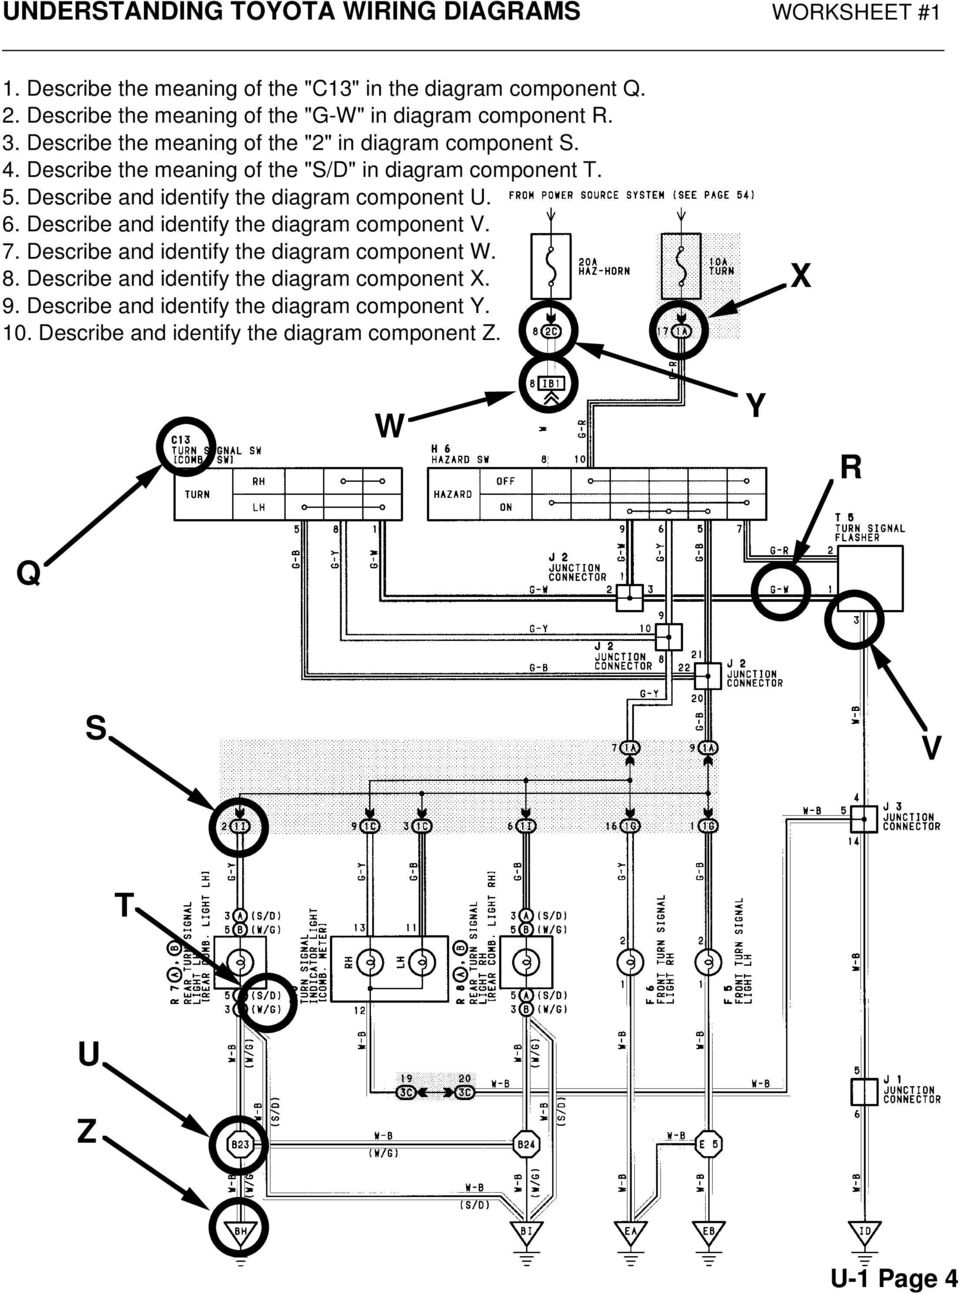 medium resolution of describe the meaning of the s d in diagram component t 5 7 understanding toyota wiring